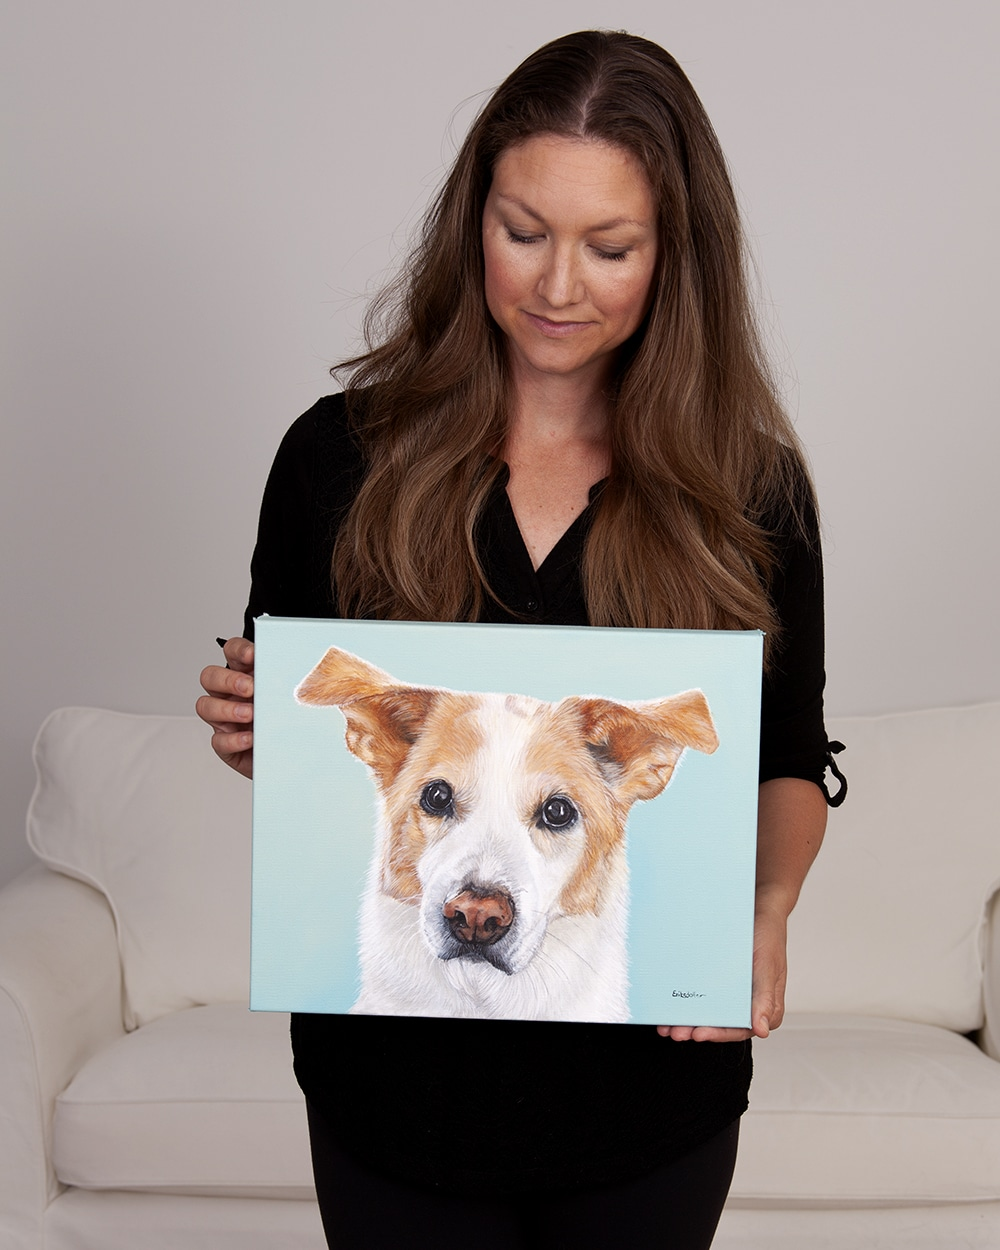 Fine arts painter Erica Eriksdotter with her original acrylic painting of a lab, collie and husky mix pet portrait